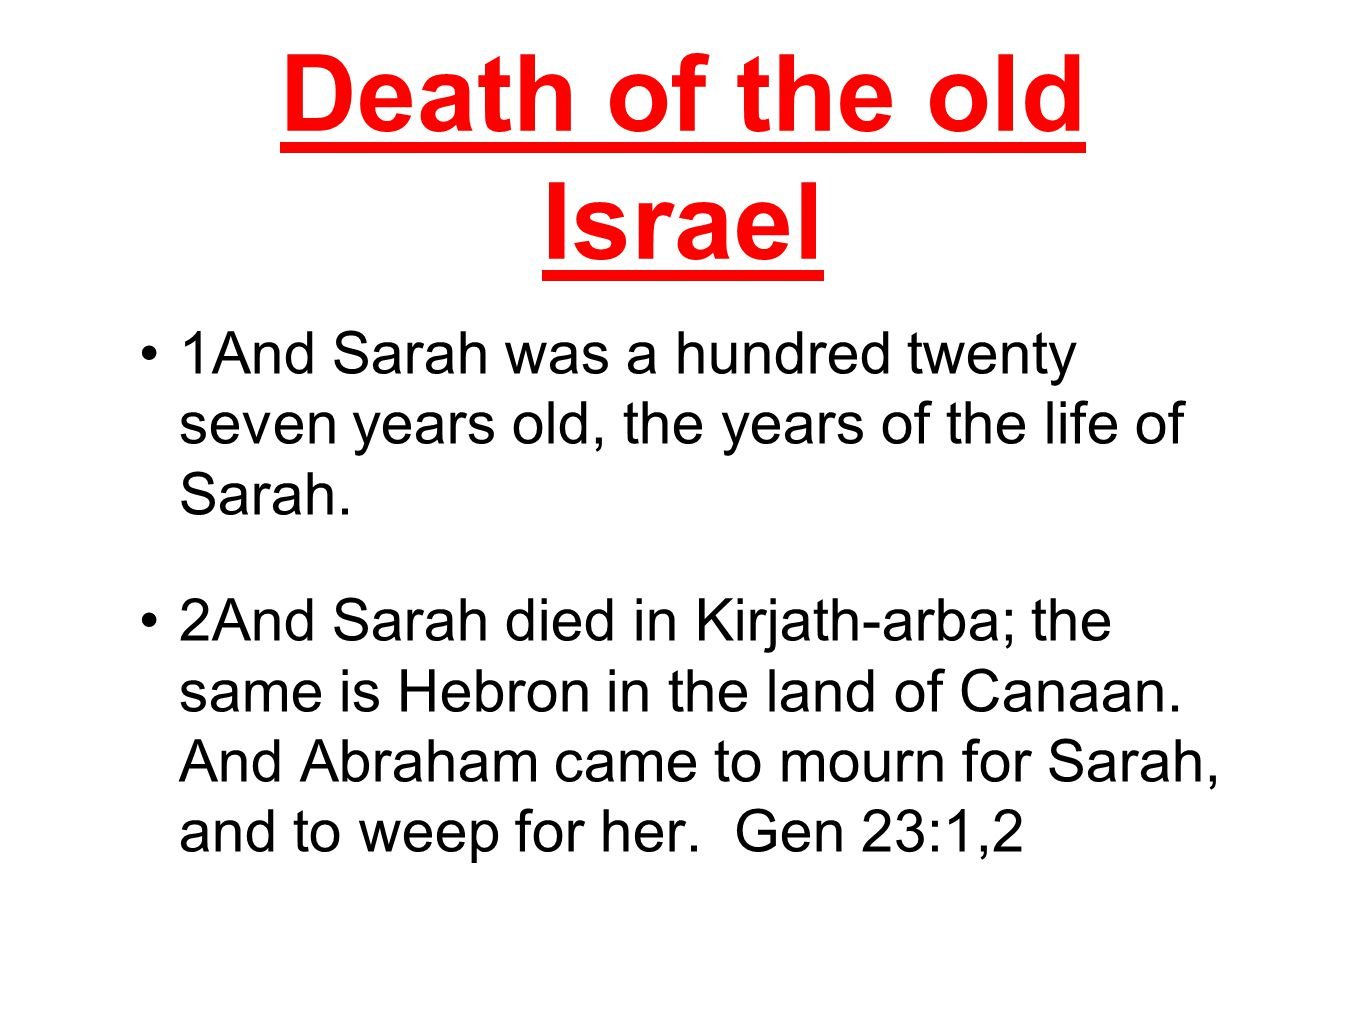 Death of the old Israel 1And Sarah was a hundred twenty seven years old, the years of the life of Sarah.